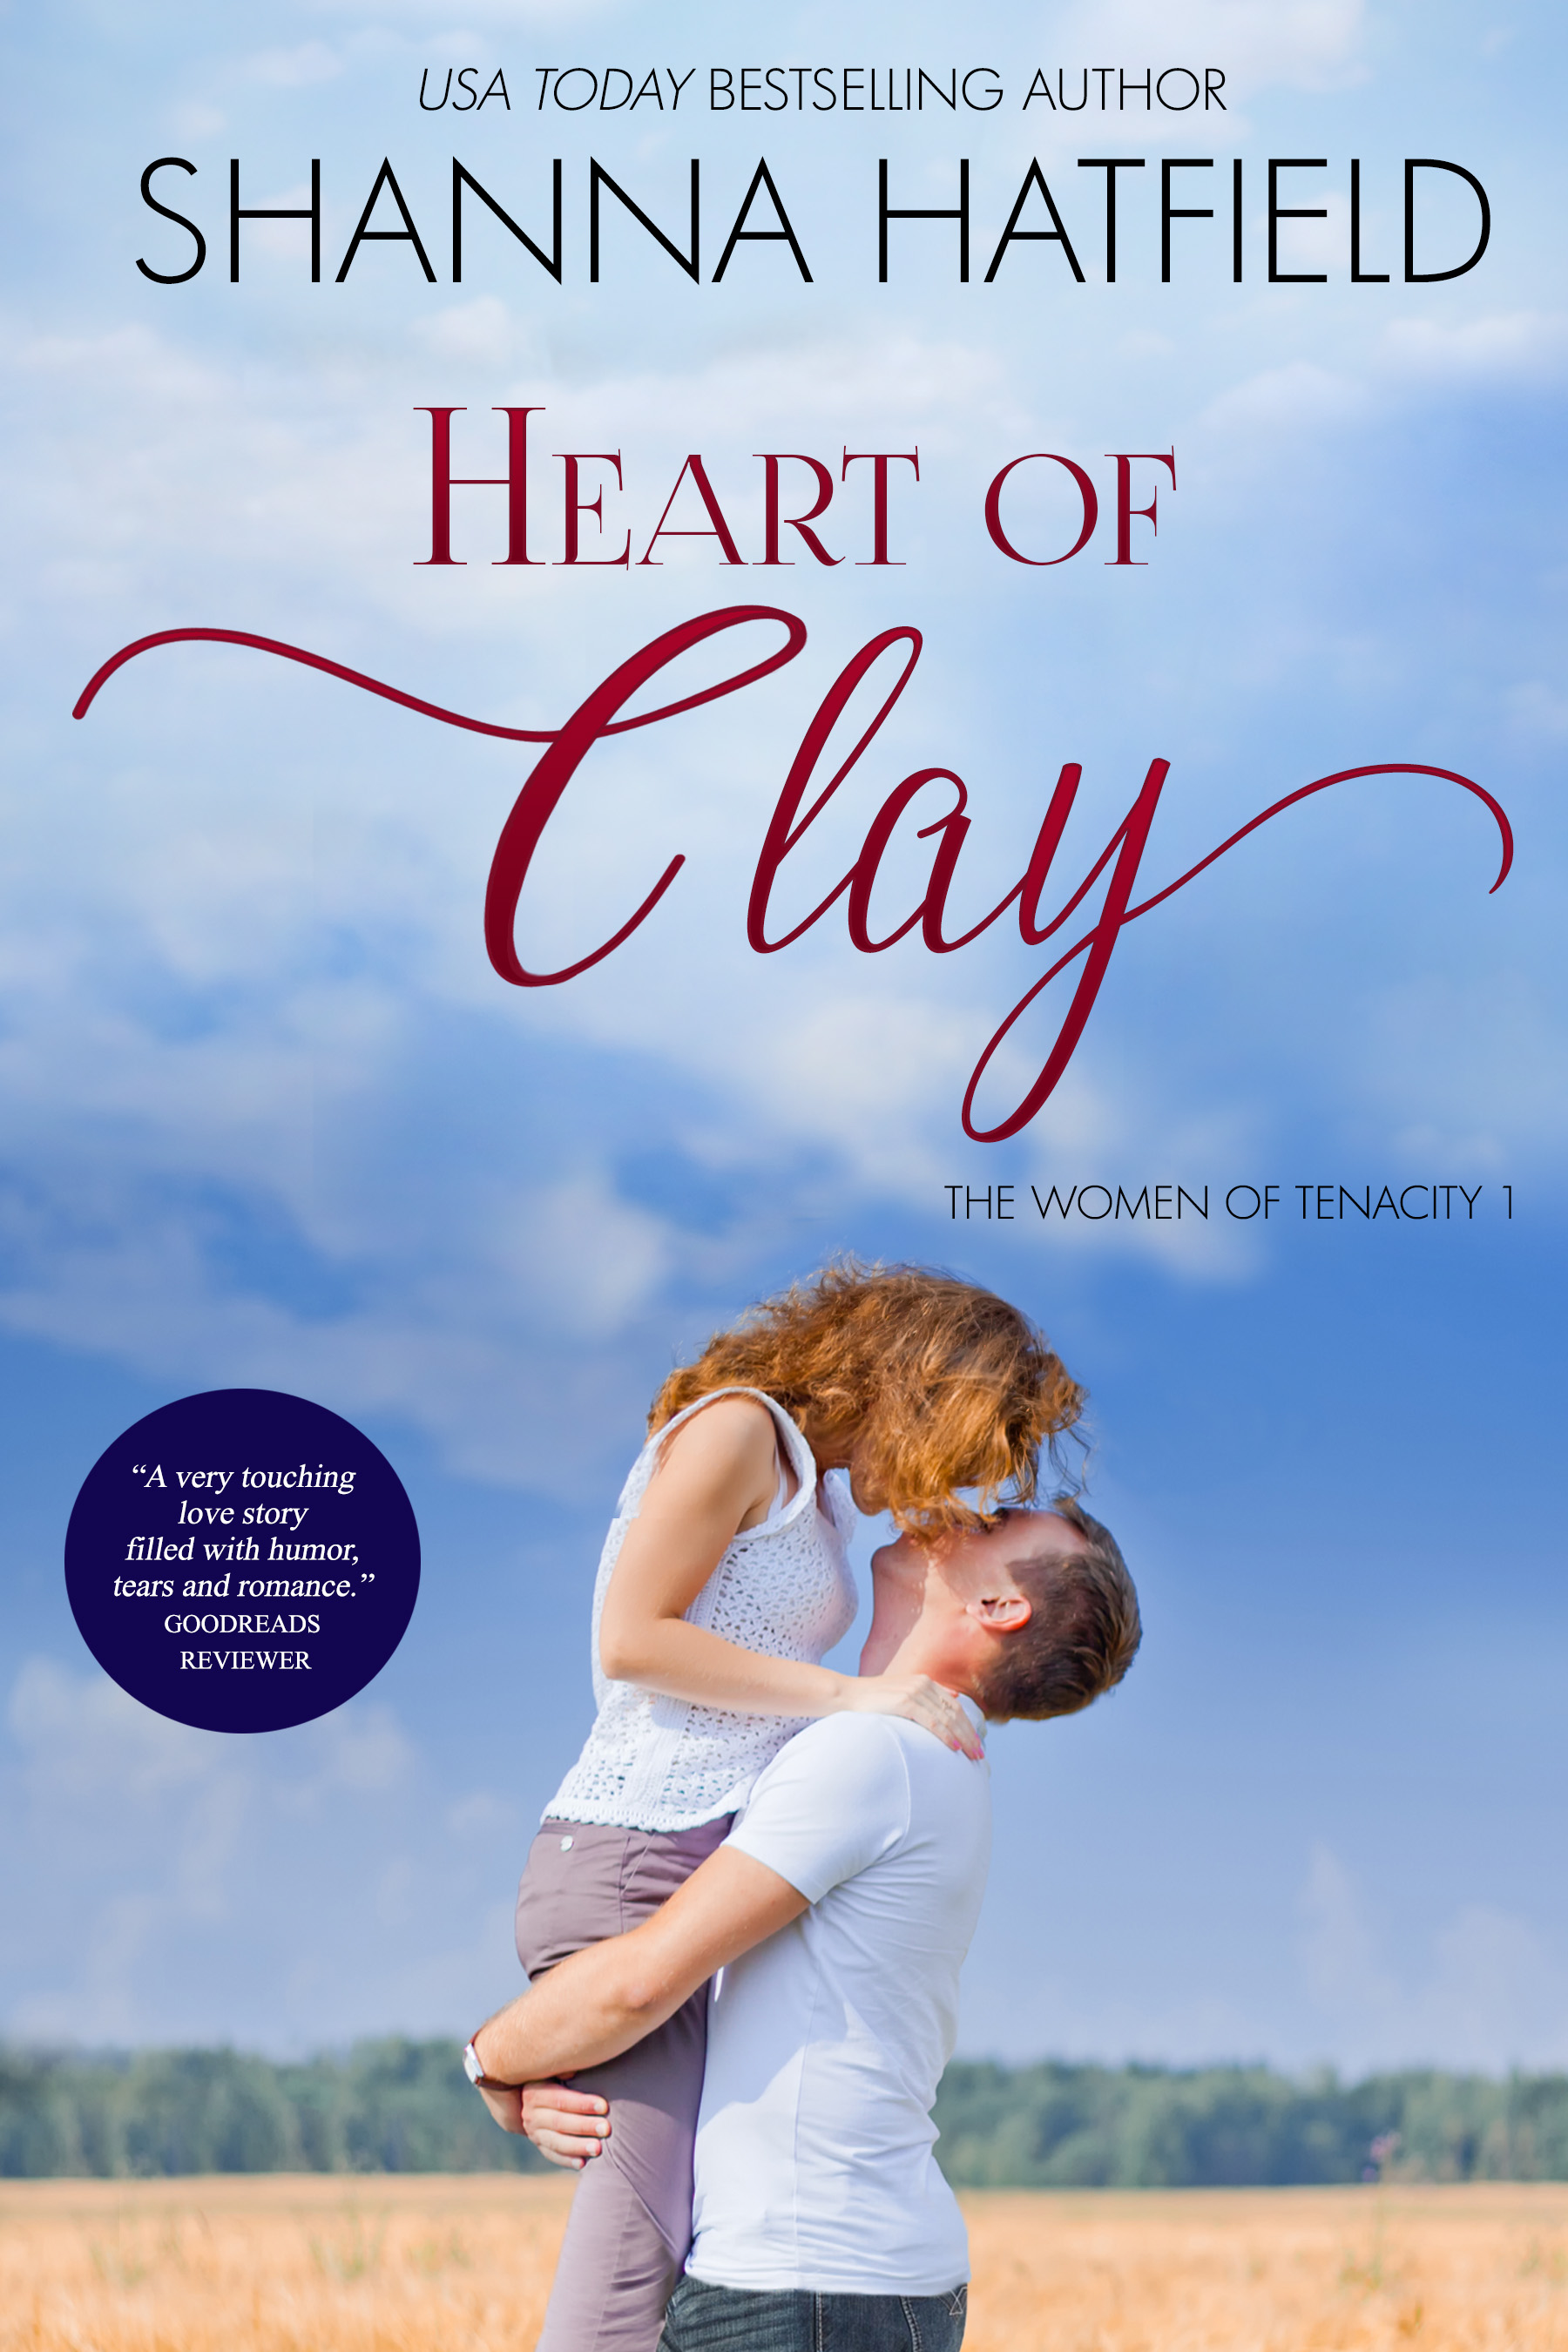 Heart of Clay (The Women of Tenacity #1) (sst-cccxxix)